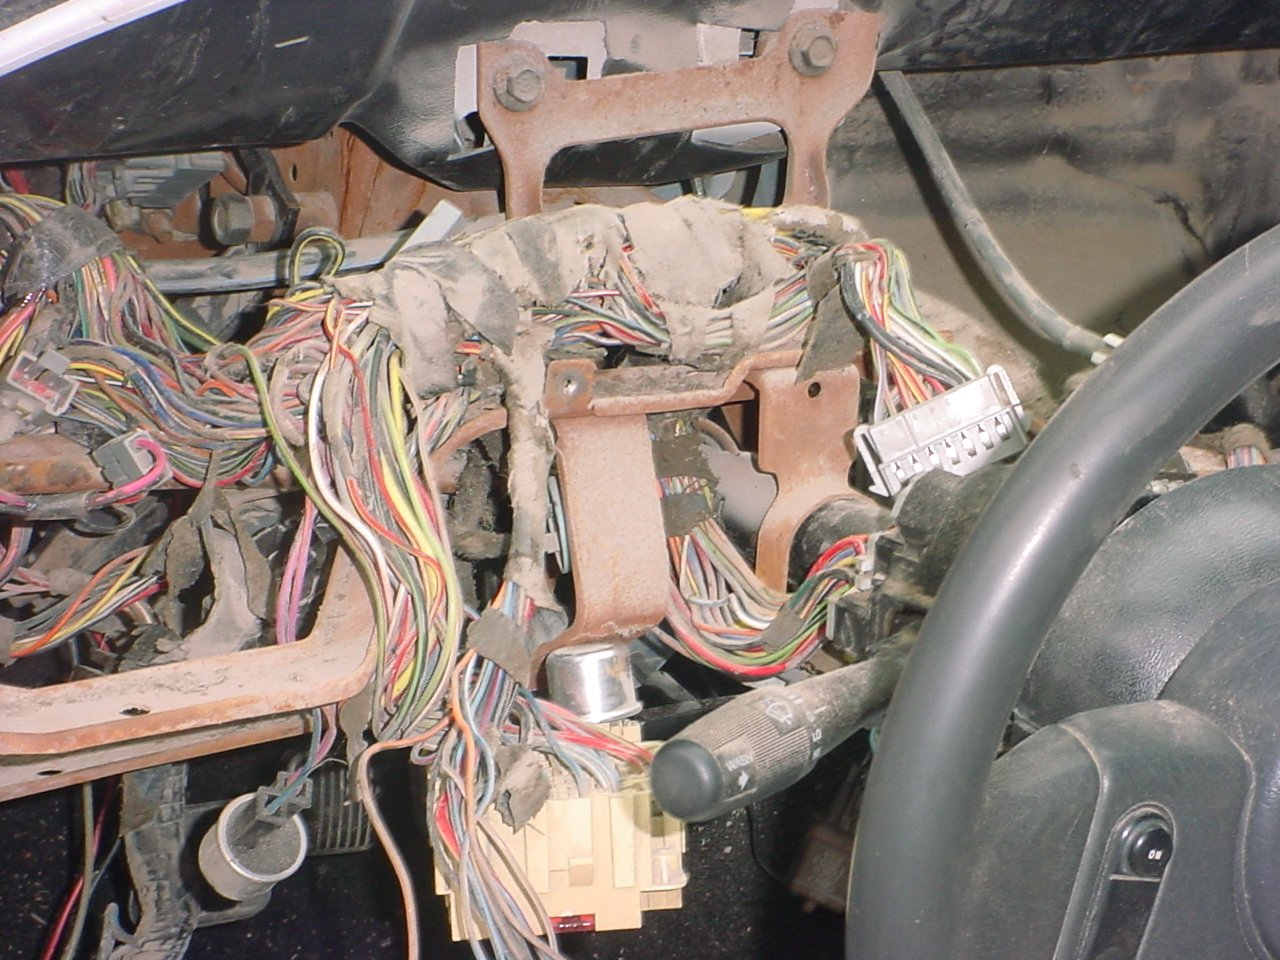 1991 Mustang Wire Diagram Manual E Books 65 Ford Wiring Underdash Forumclick Image For Larger Version Name Dsc01663 Views 26733 Size